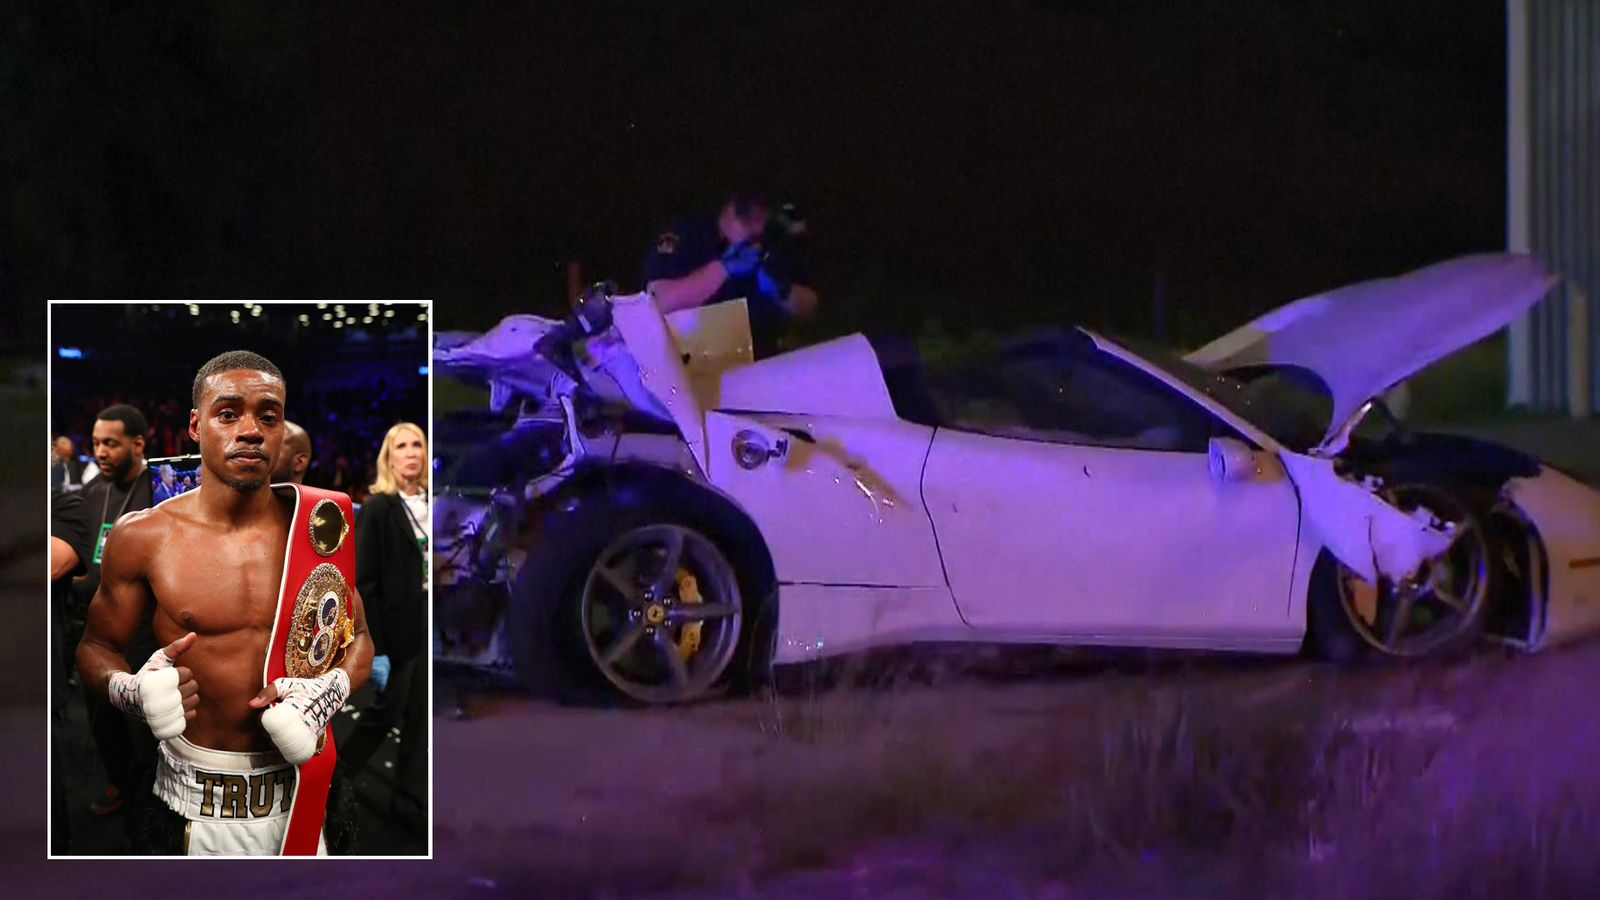 Boxing champion in intensive care after flipping his Ferrari